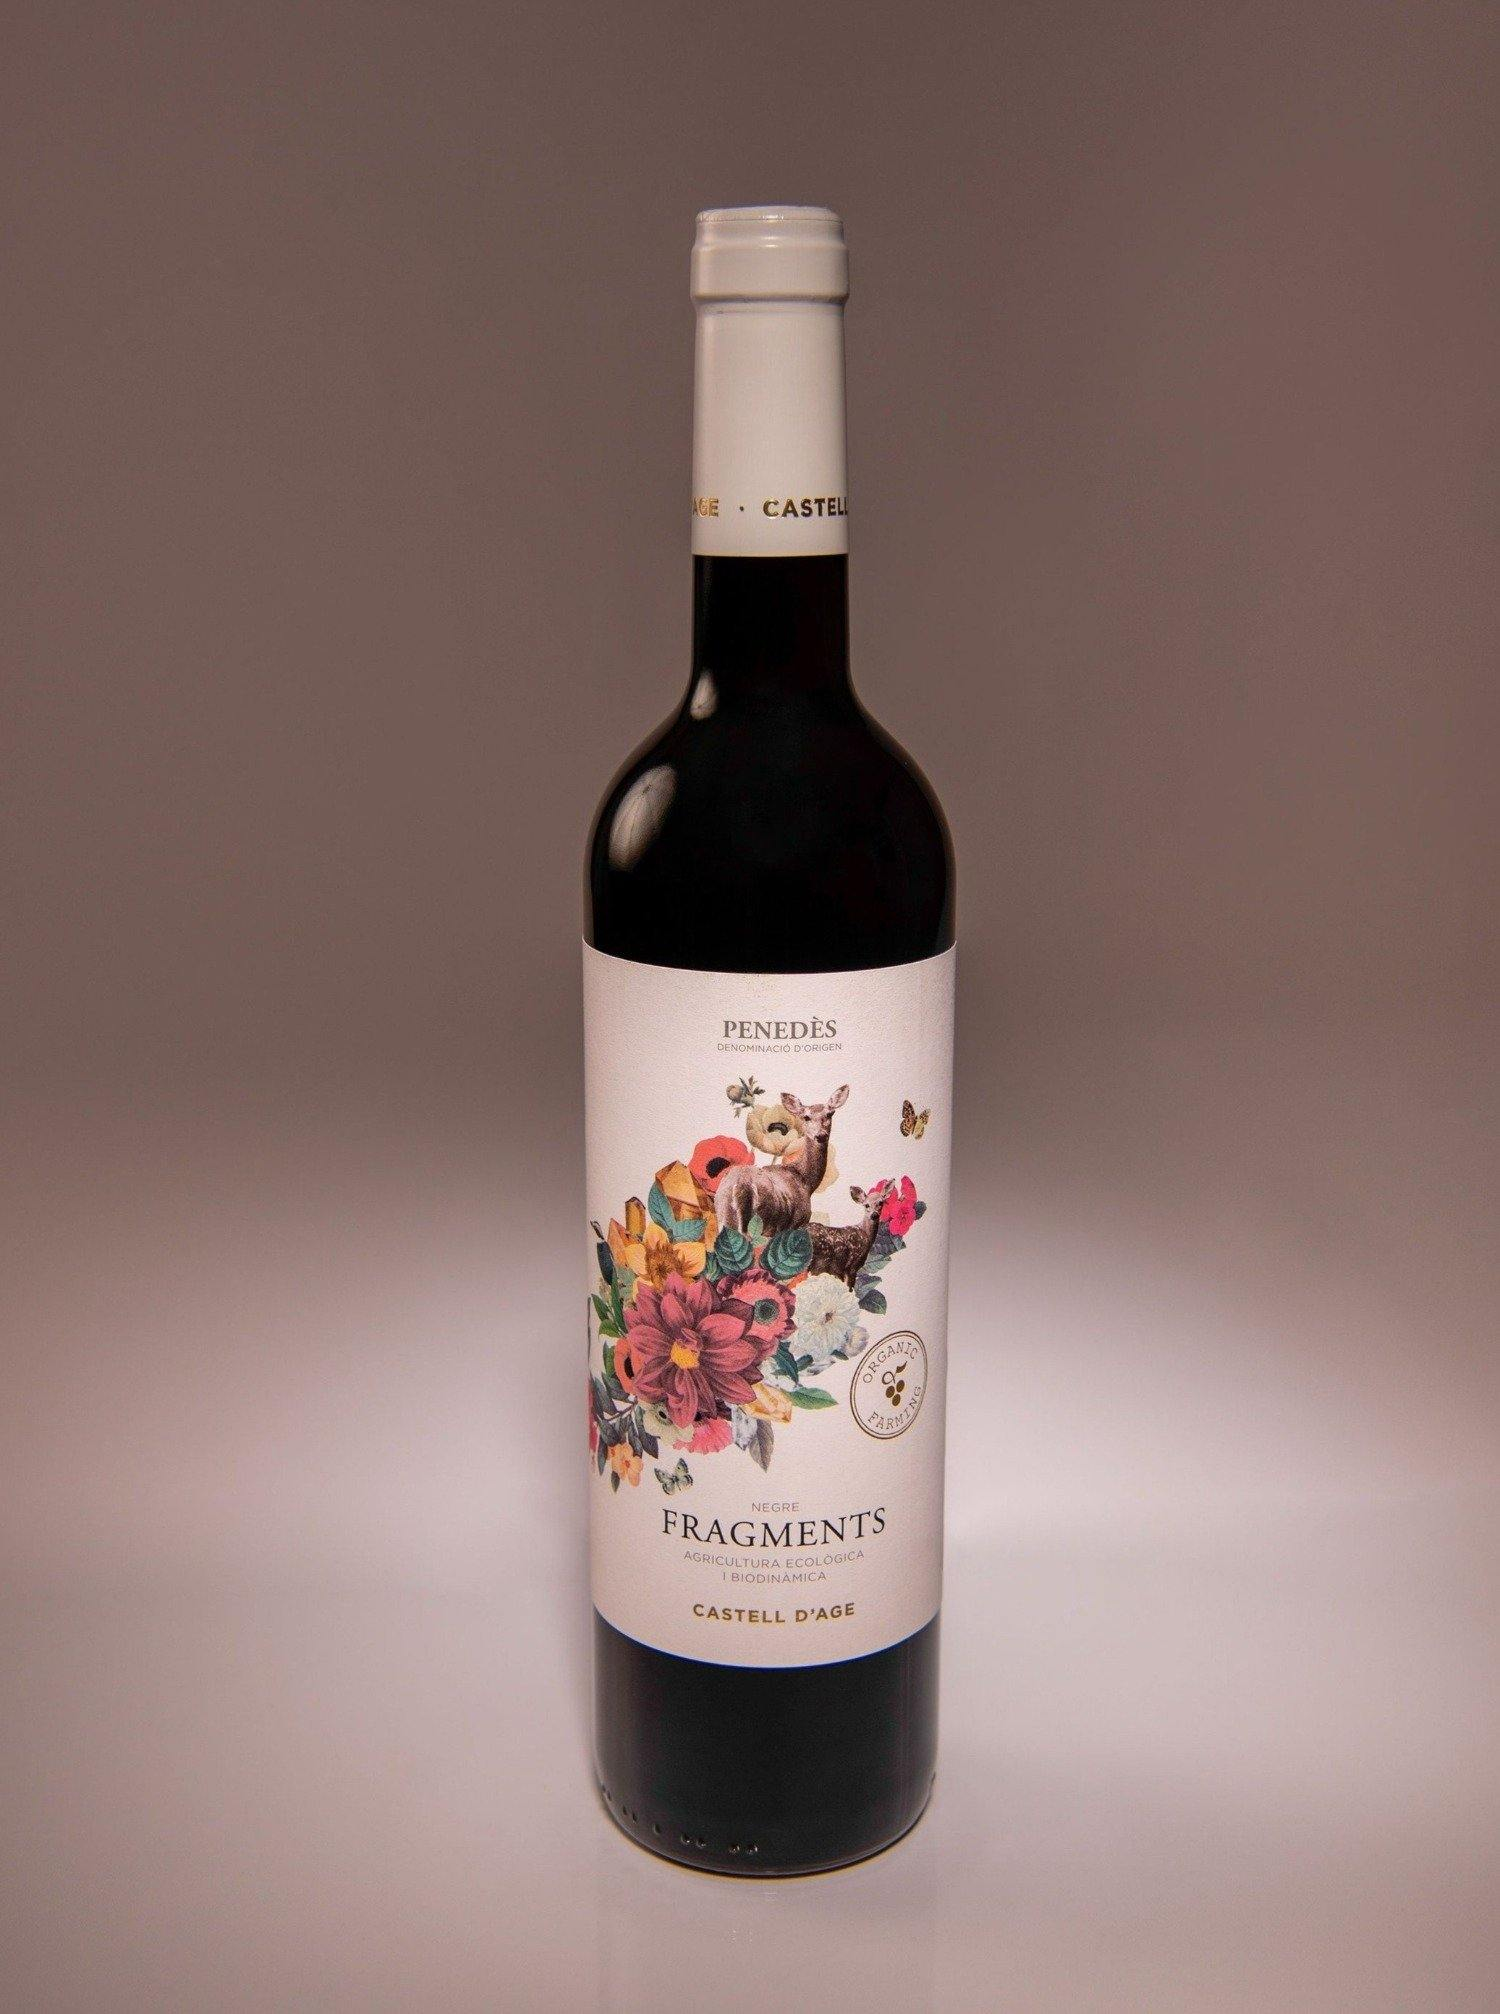 Castell d'Age, Penedès, Fragments Red 2019 - Mirabelle Selects